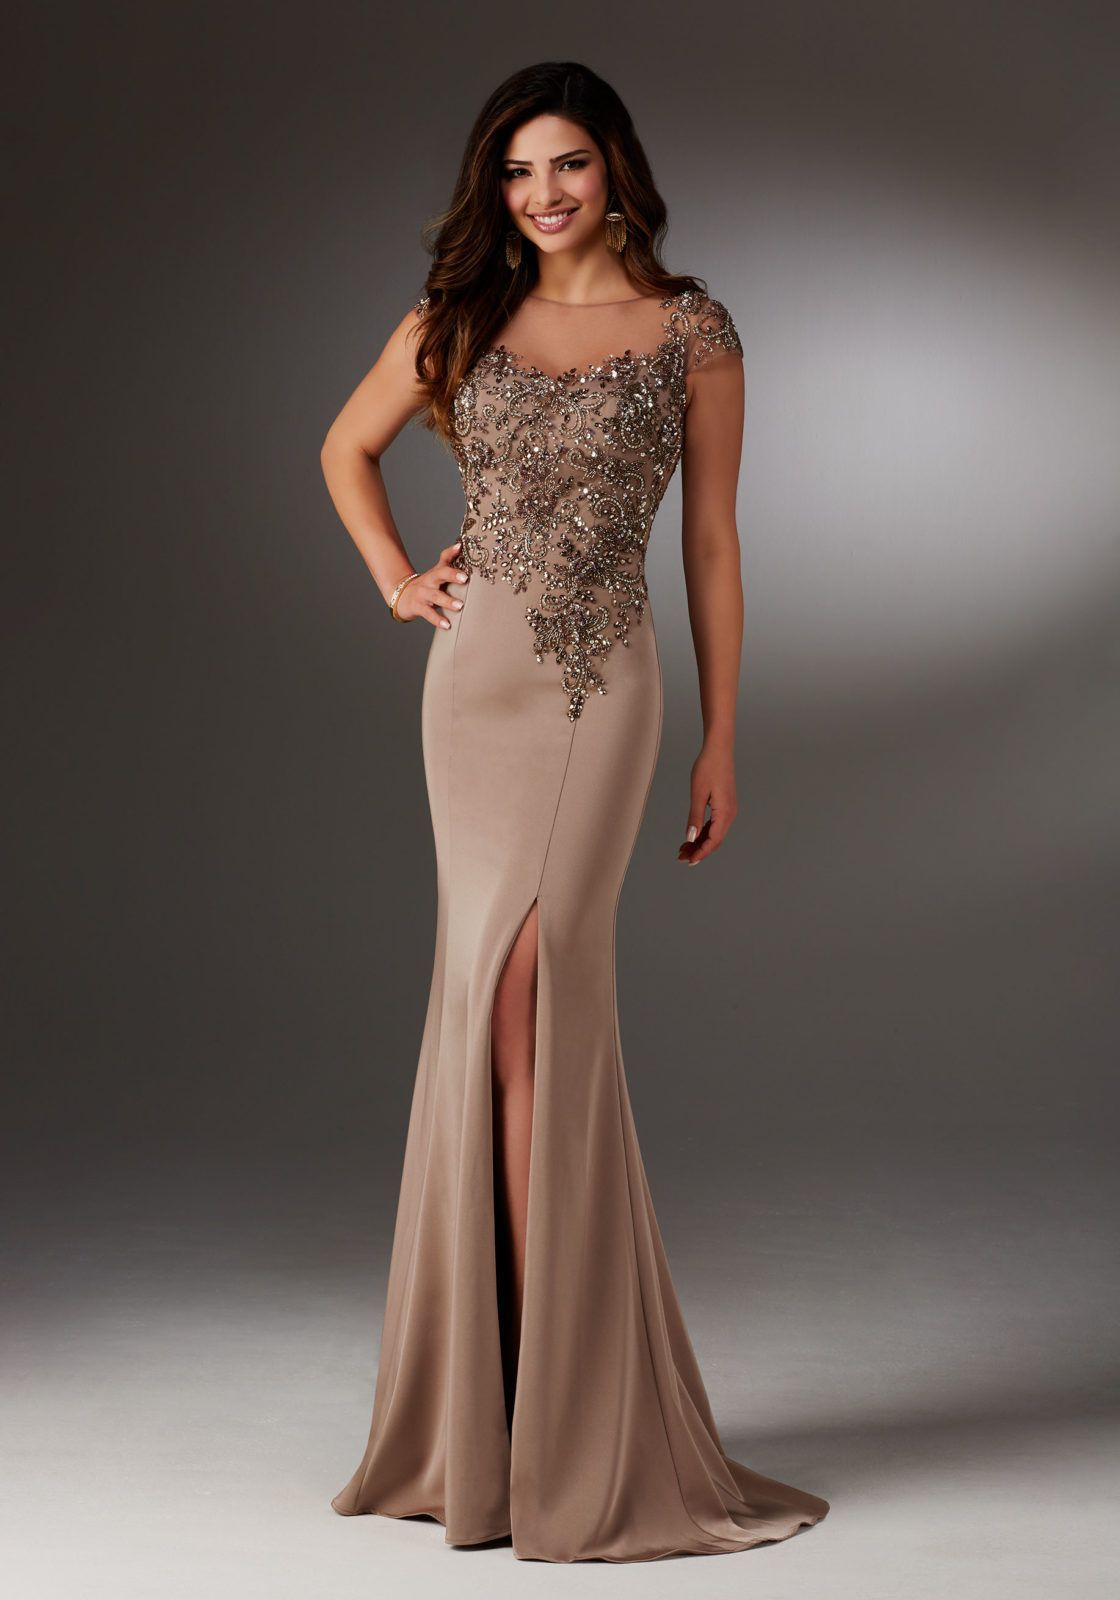 Flaunt your beautiful curves while still looking classy & elegant